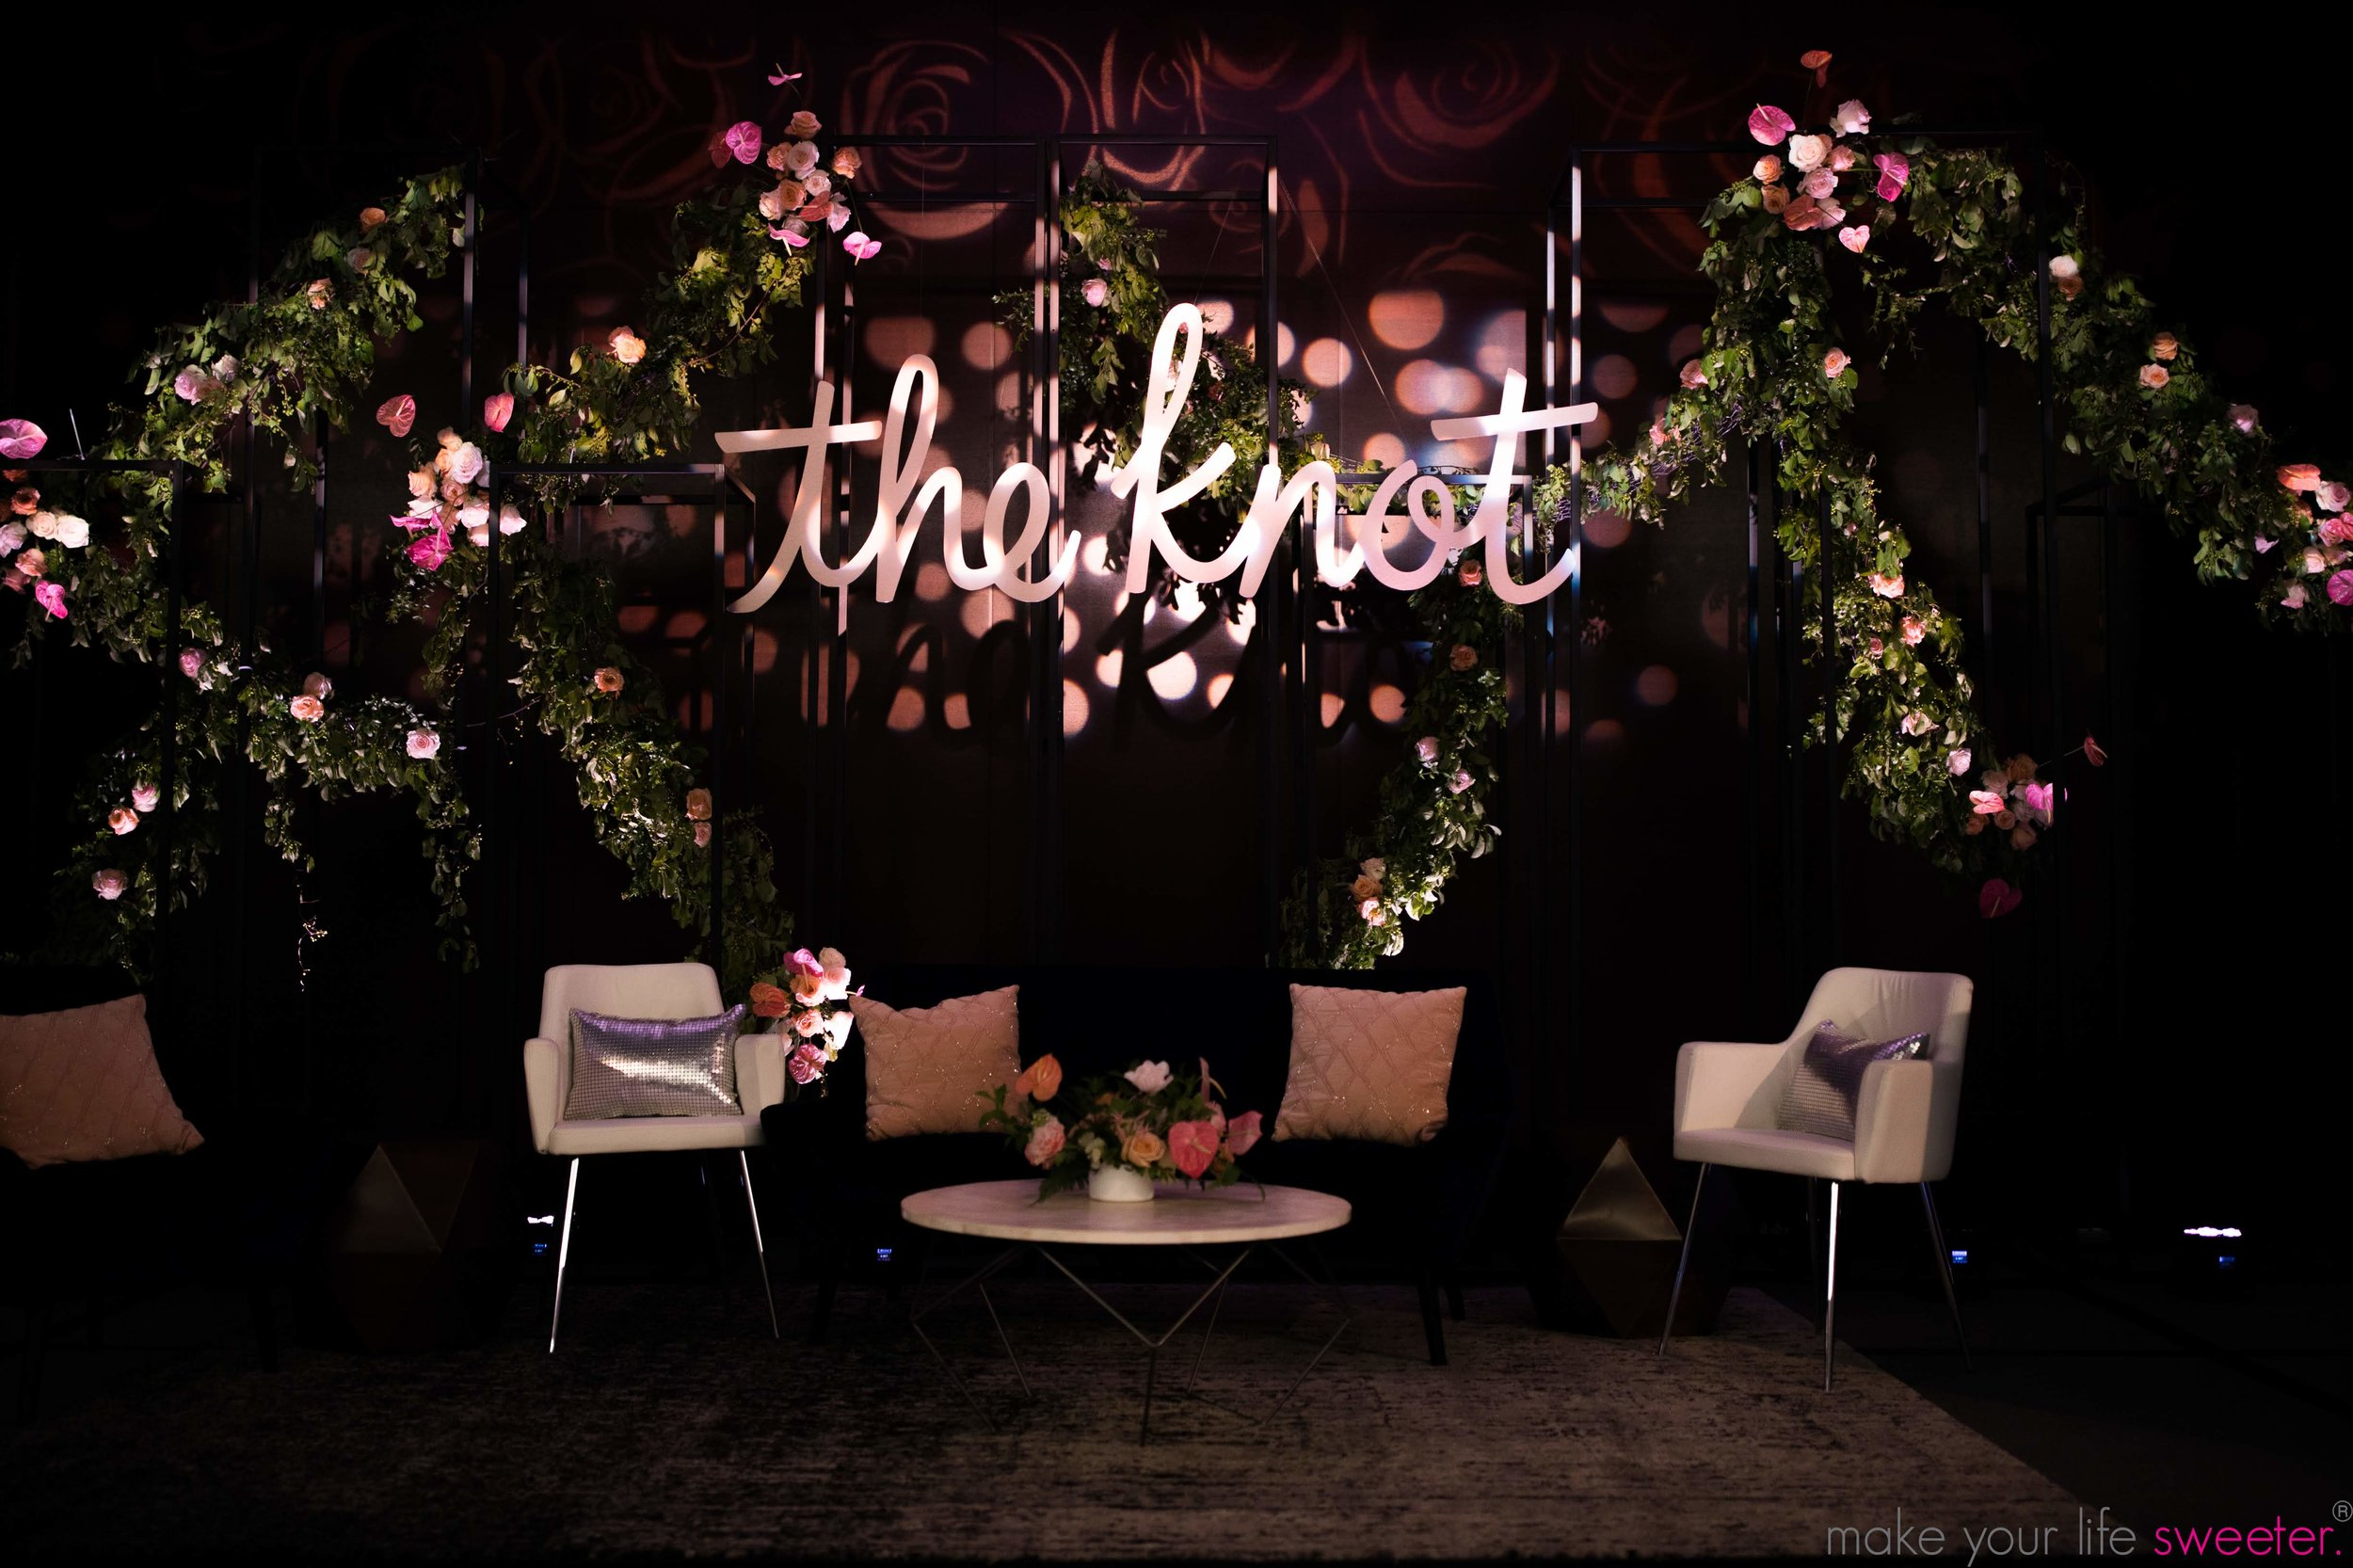 Make Your Life Sweeter Events - The Knot Pro